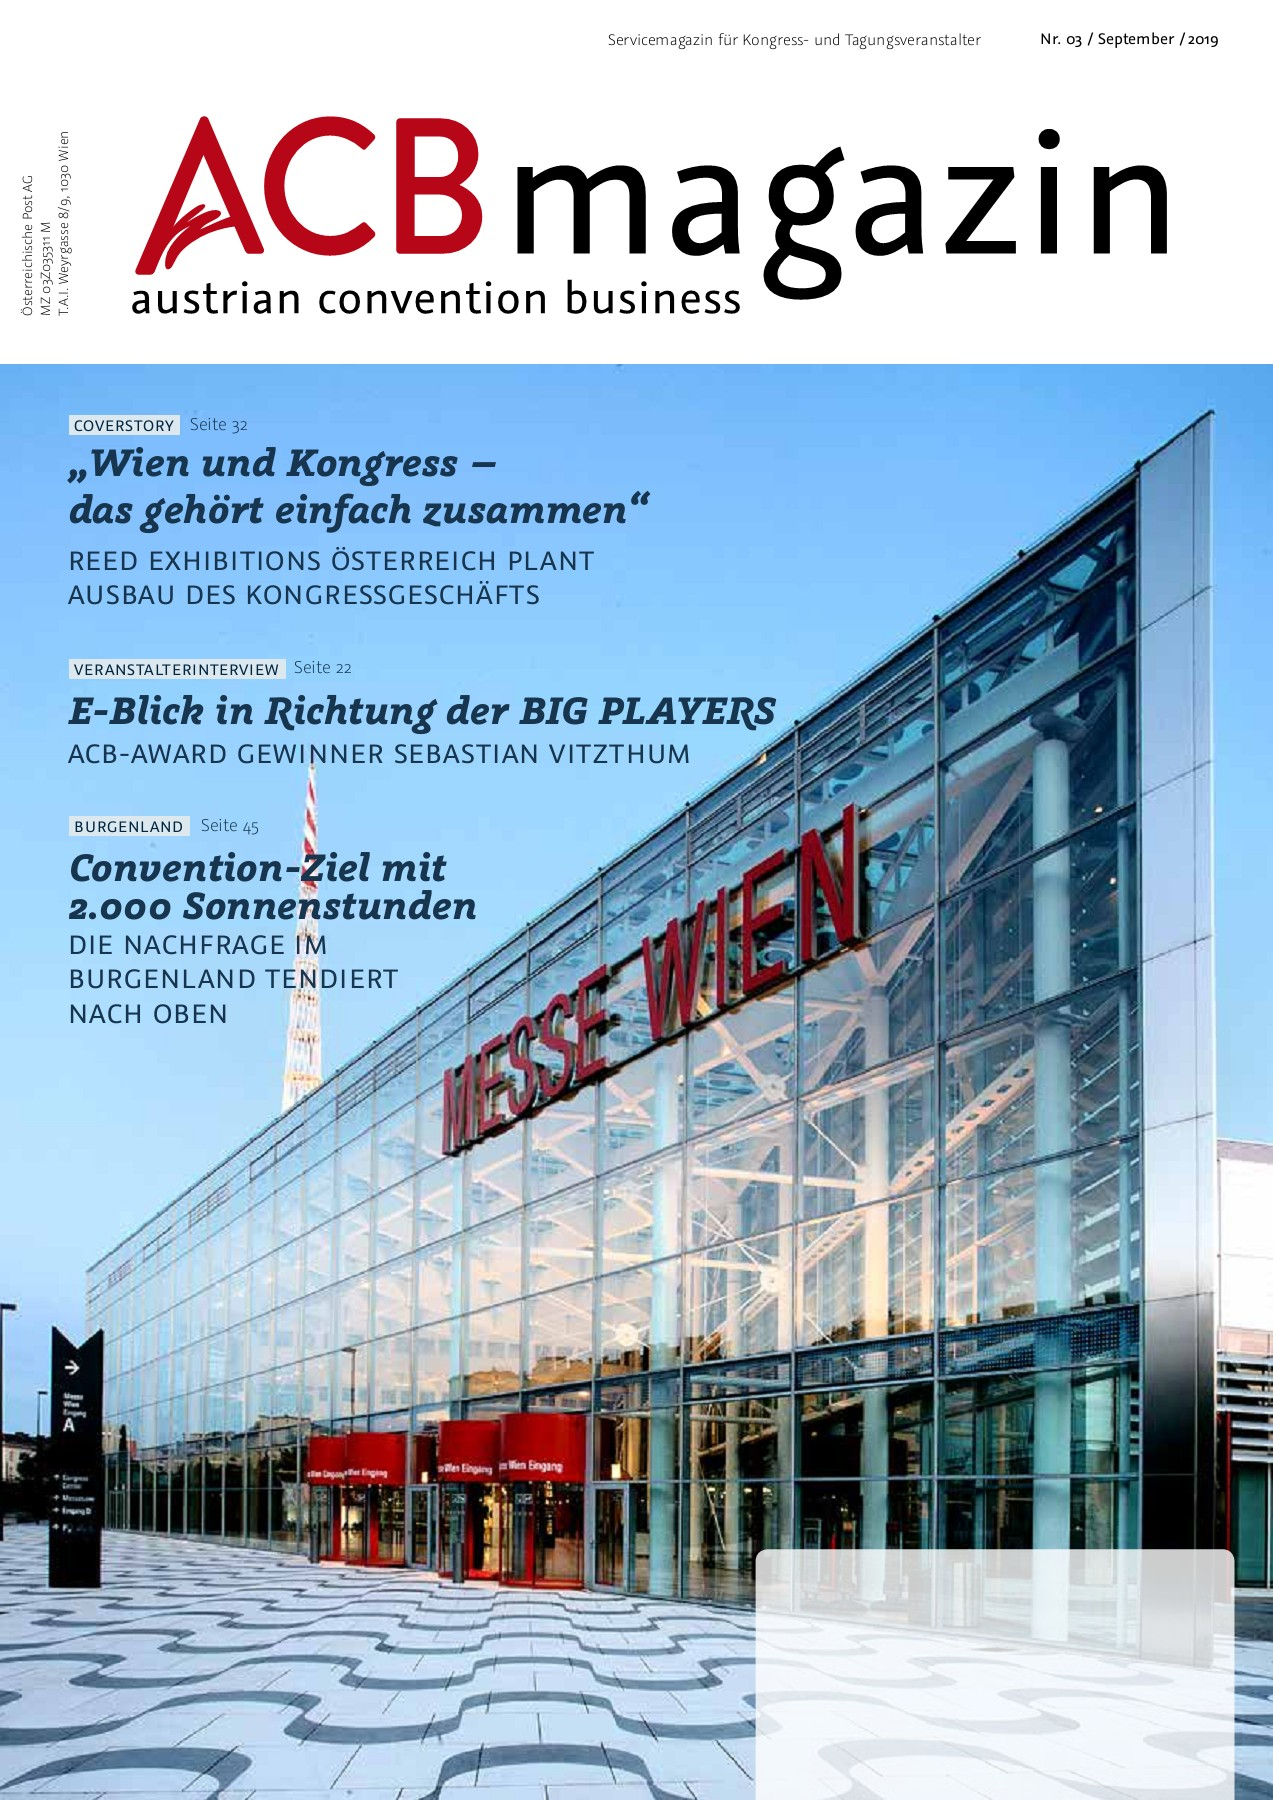 Acb Magazin 03 2019 Pages 1 50 Text Version Fliphtml5 - Vorhänger Polarisierend